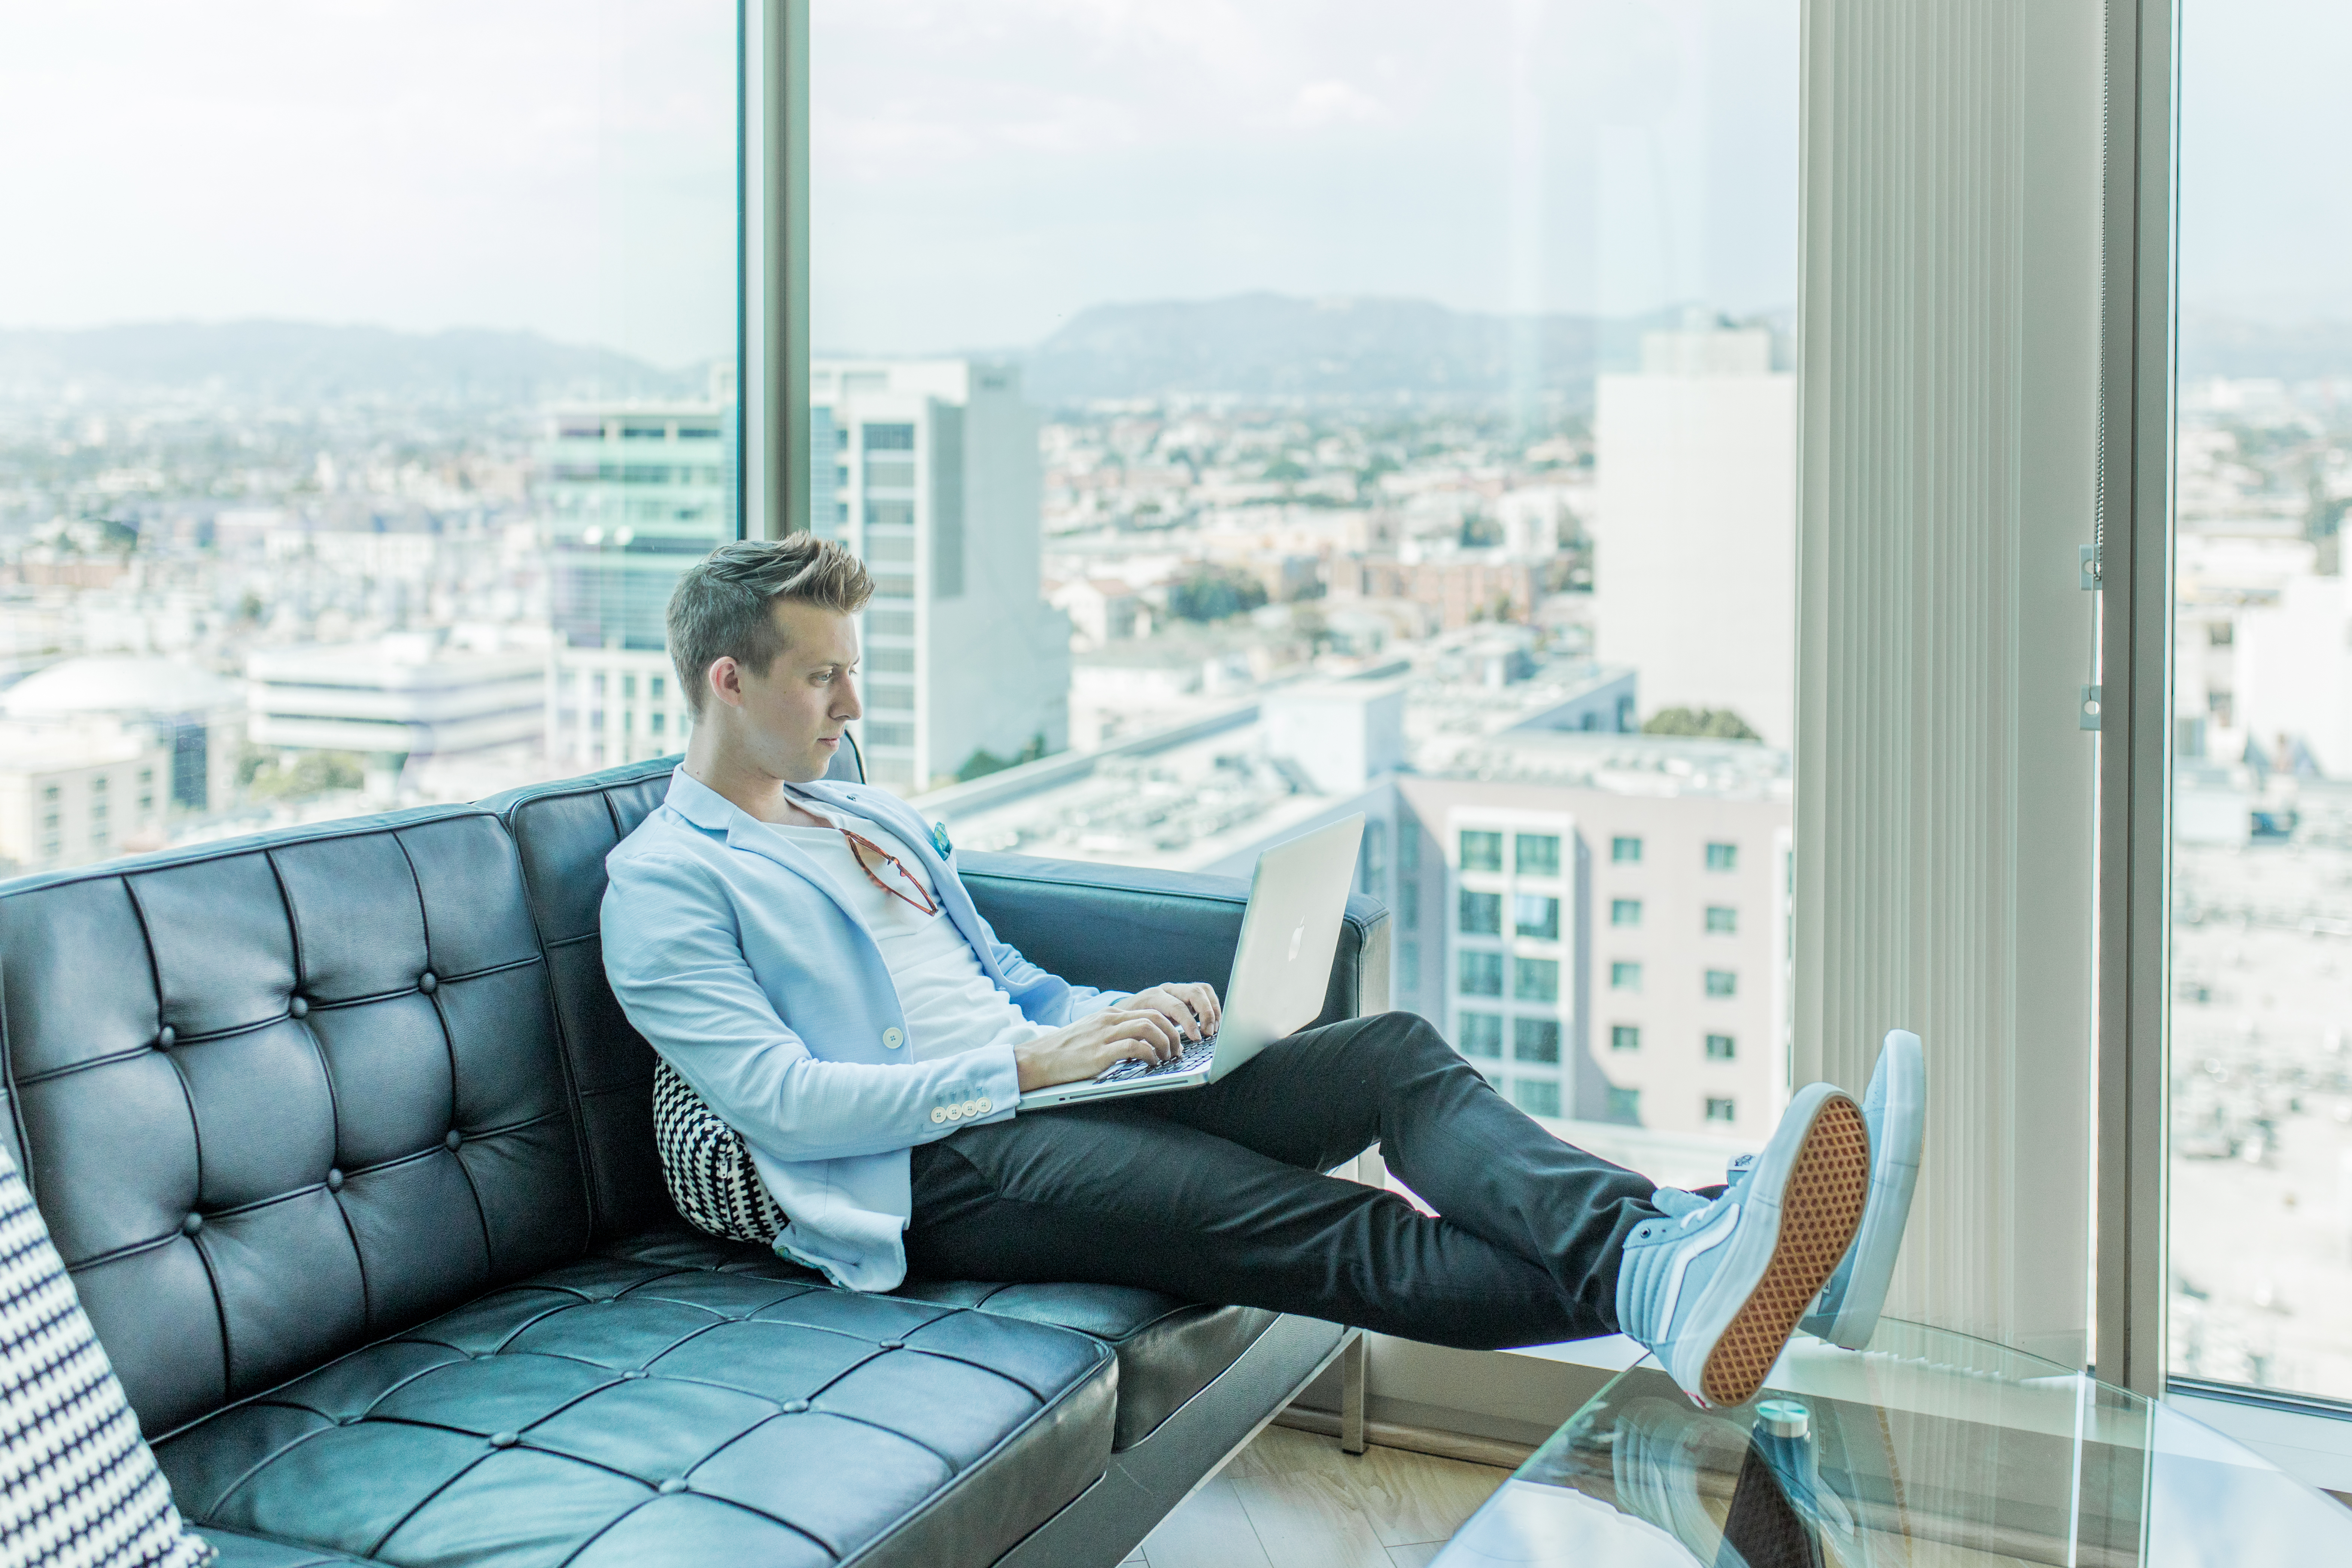 """This Entrepreneur, Austin Distel, is blogging on his laptop about building a social media marketing strategy to showing bloggers how to make money on Facebook, Pinterest, and Instagram. His business has become a technology company, selling software and day trading cryptocurrency on the blockchain.\r\nPhotographers \ud83d\udcf8 @breeandstephenphoto. Model \ud83d\udc68\ud83c\udffc\u200d\ud83d\udcbb @austindistel.\r\n\r\n\u2764\ufe0f If you use this photo on your site, I would be very appreciative if you would please credit in the caption or meta to \""www.distel.co\"". \u2764\ufe0f """